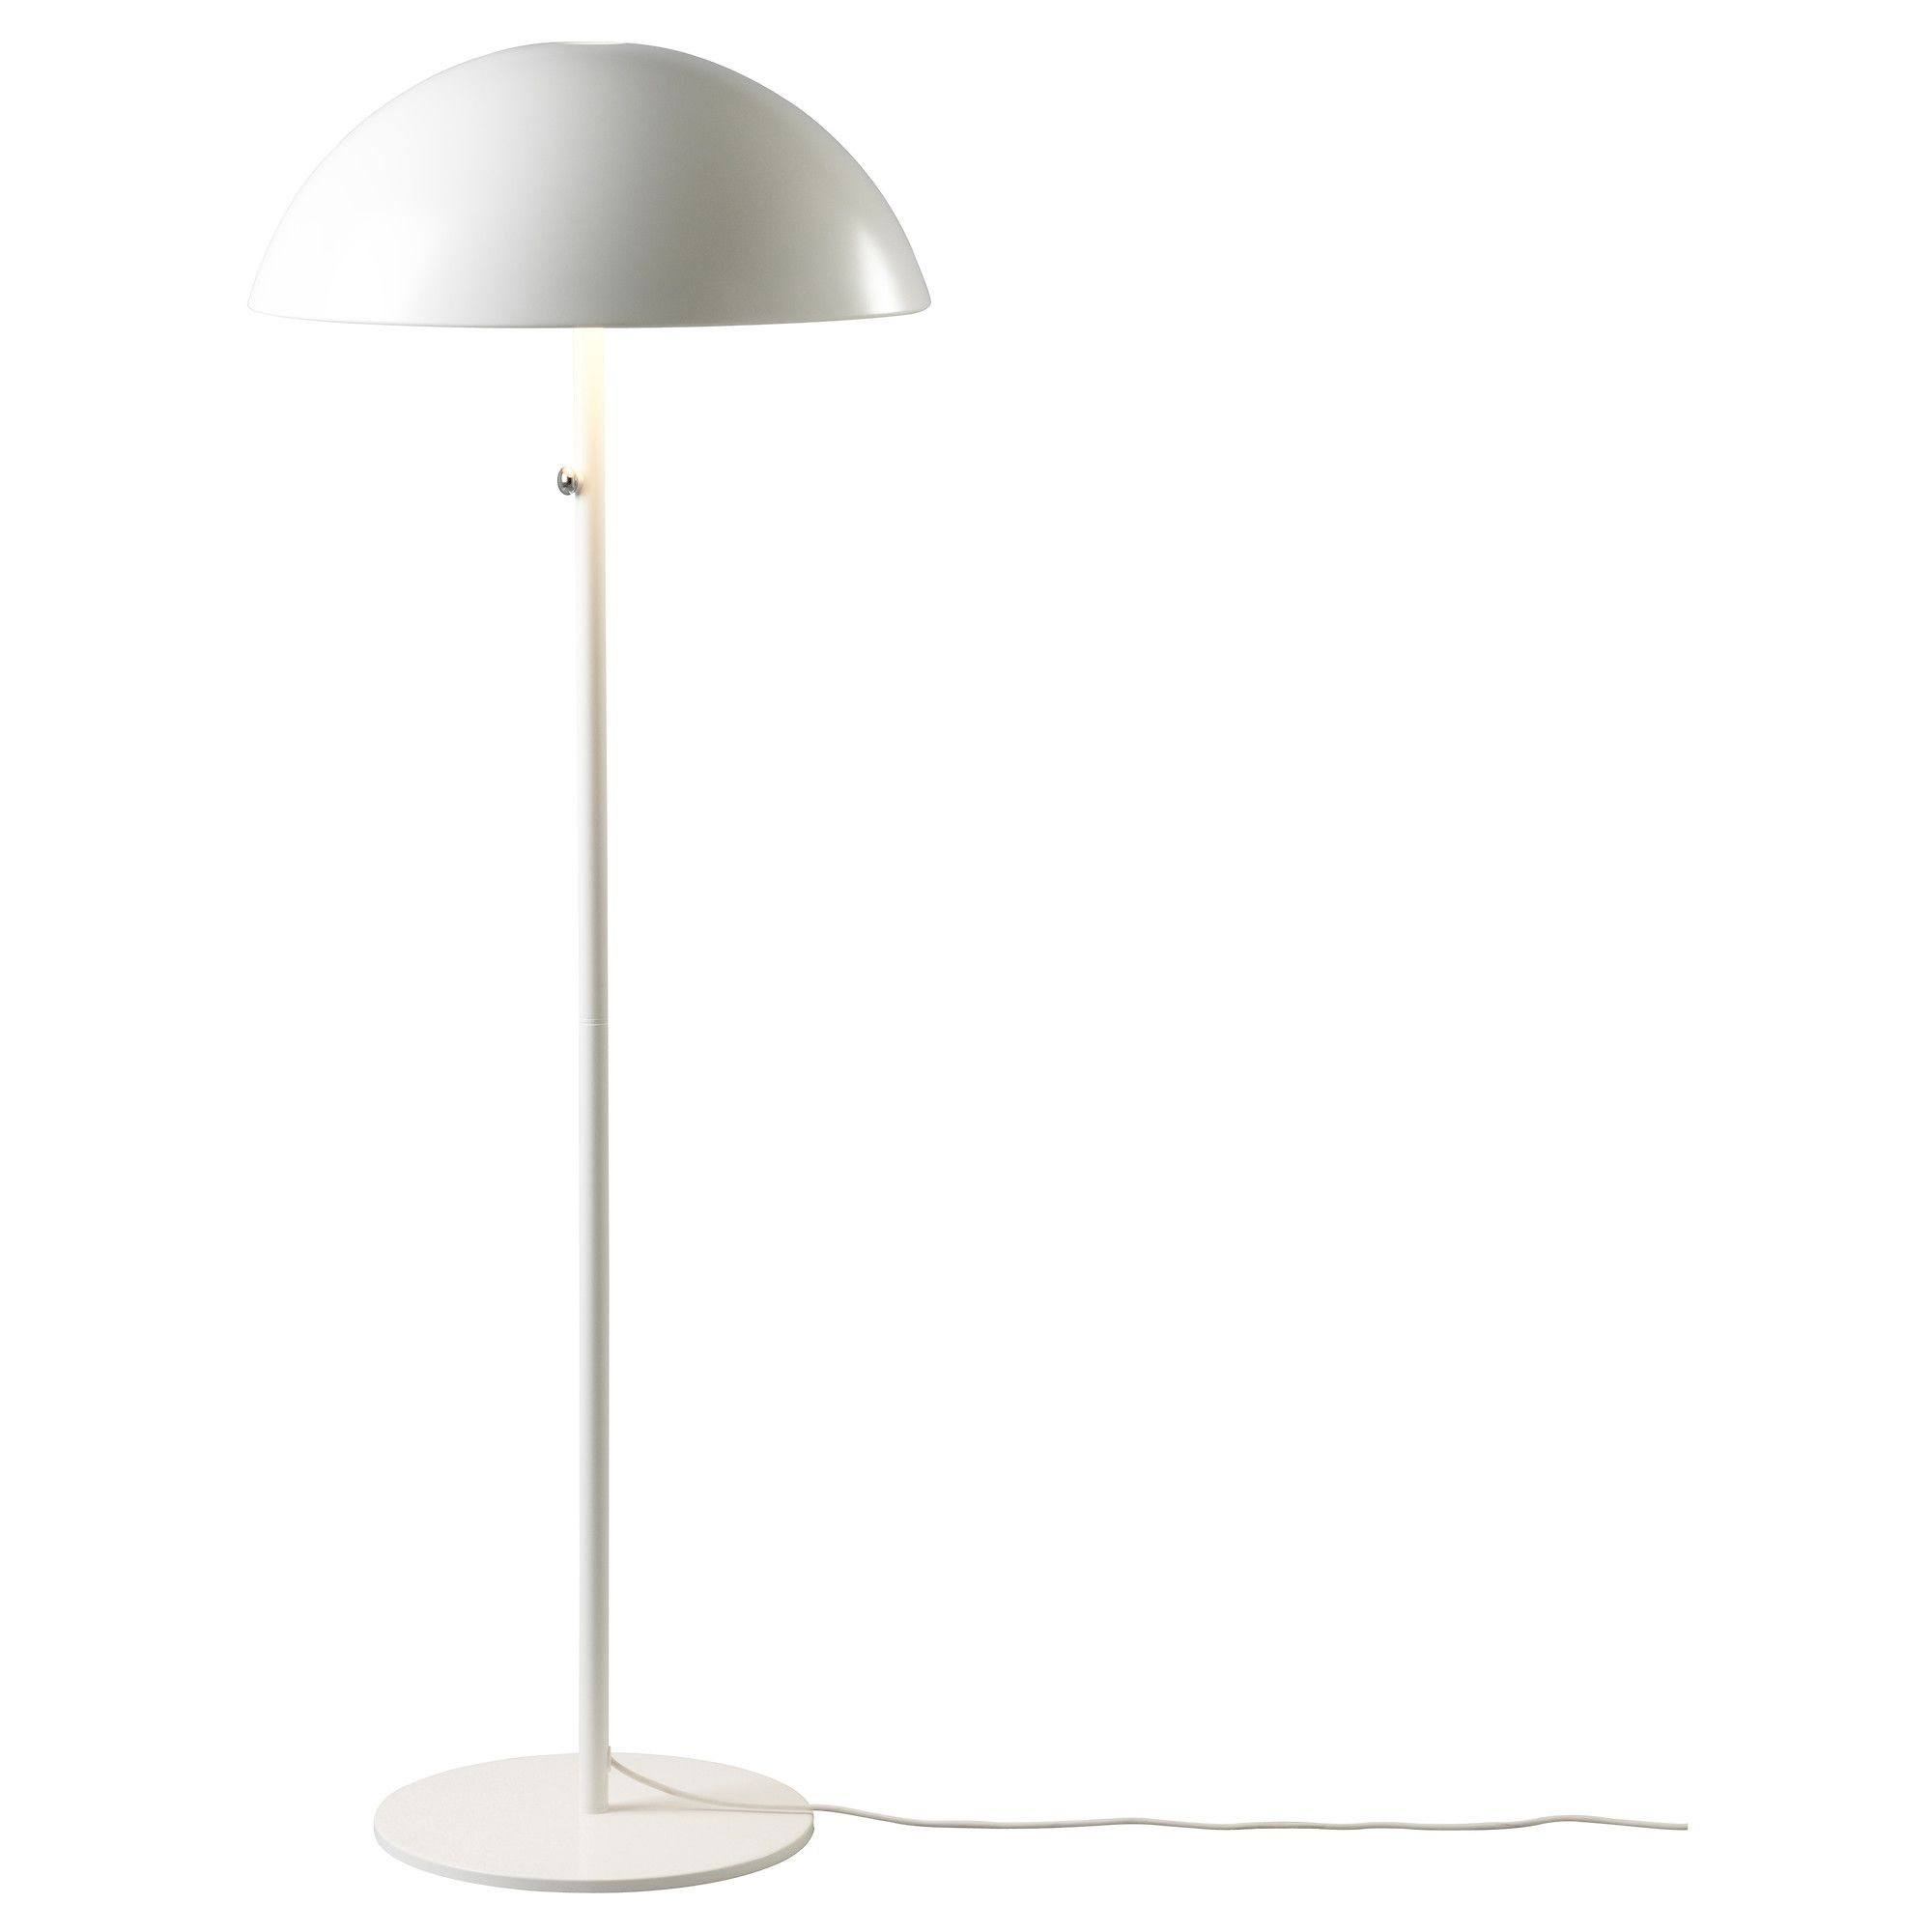 ikea 365 brasa floor lamp white ikea for the home pinterest floor lamp lights and. Black Bedroom Furniture Sets. Home Design Ideas